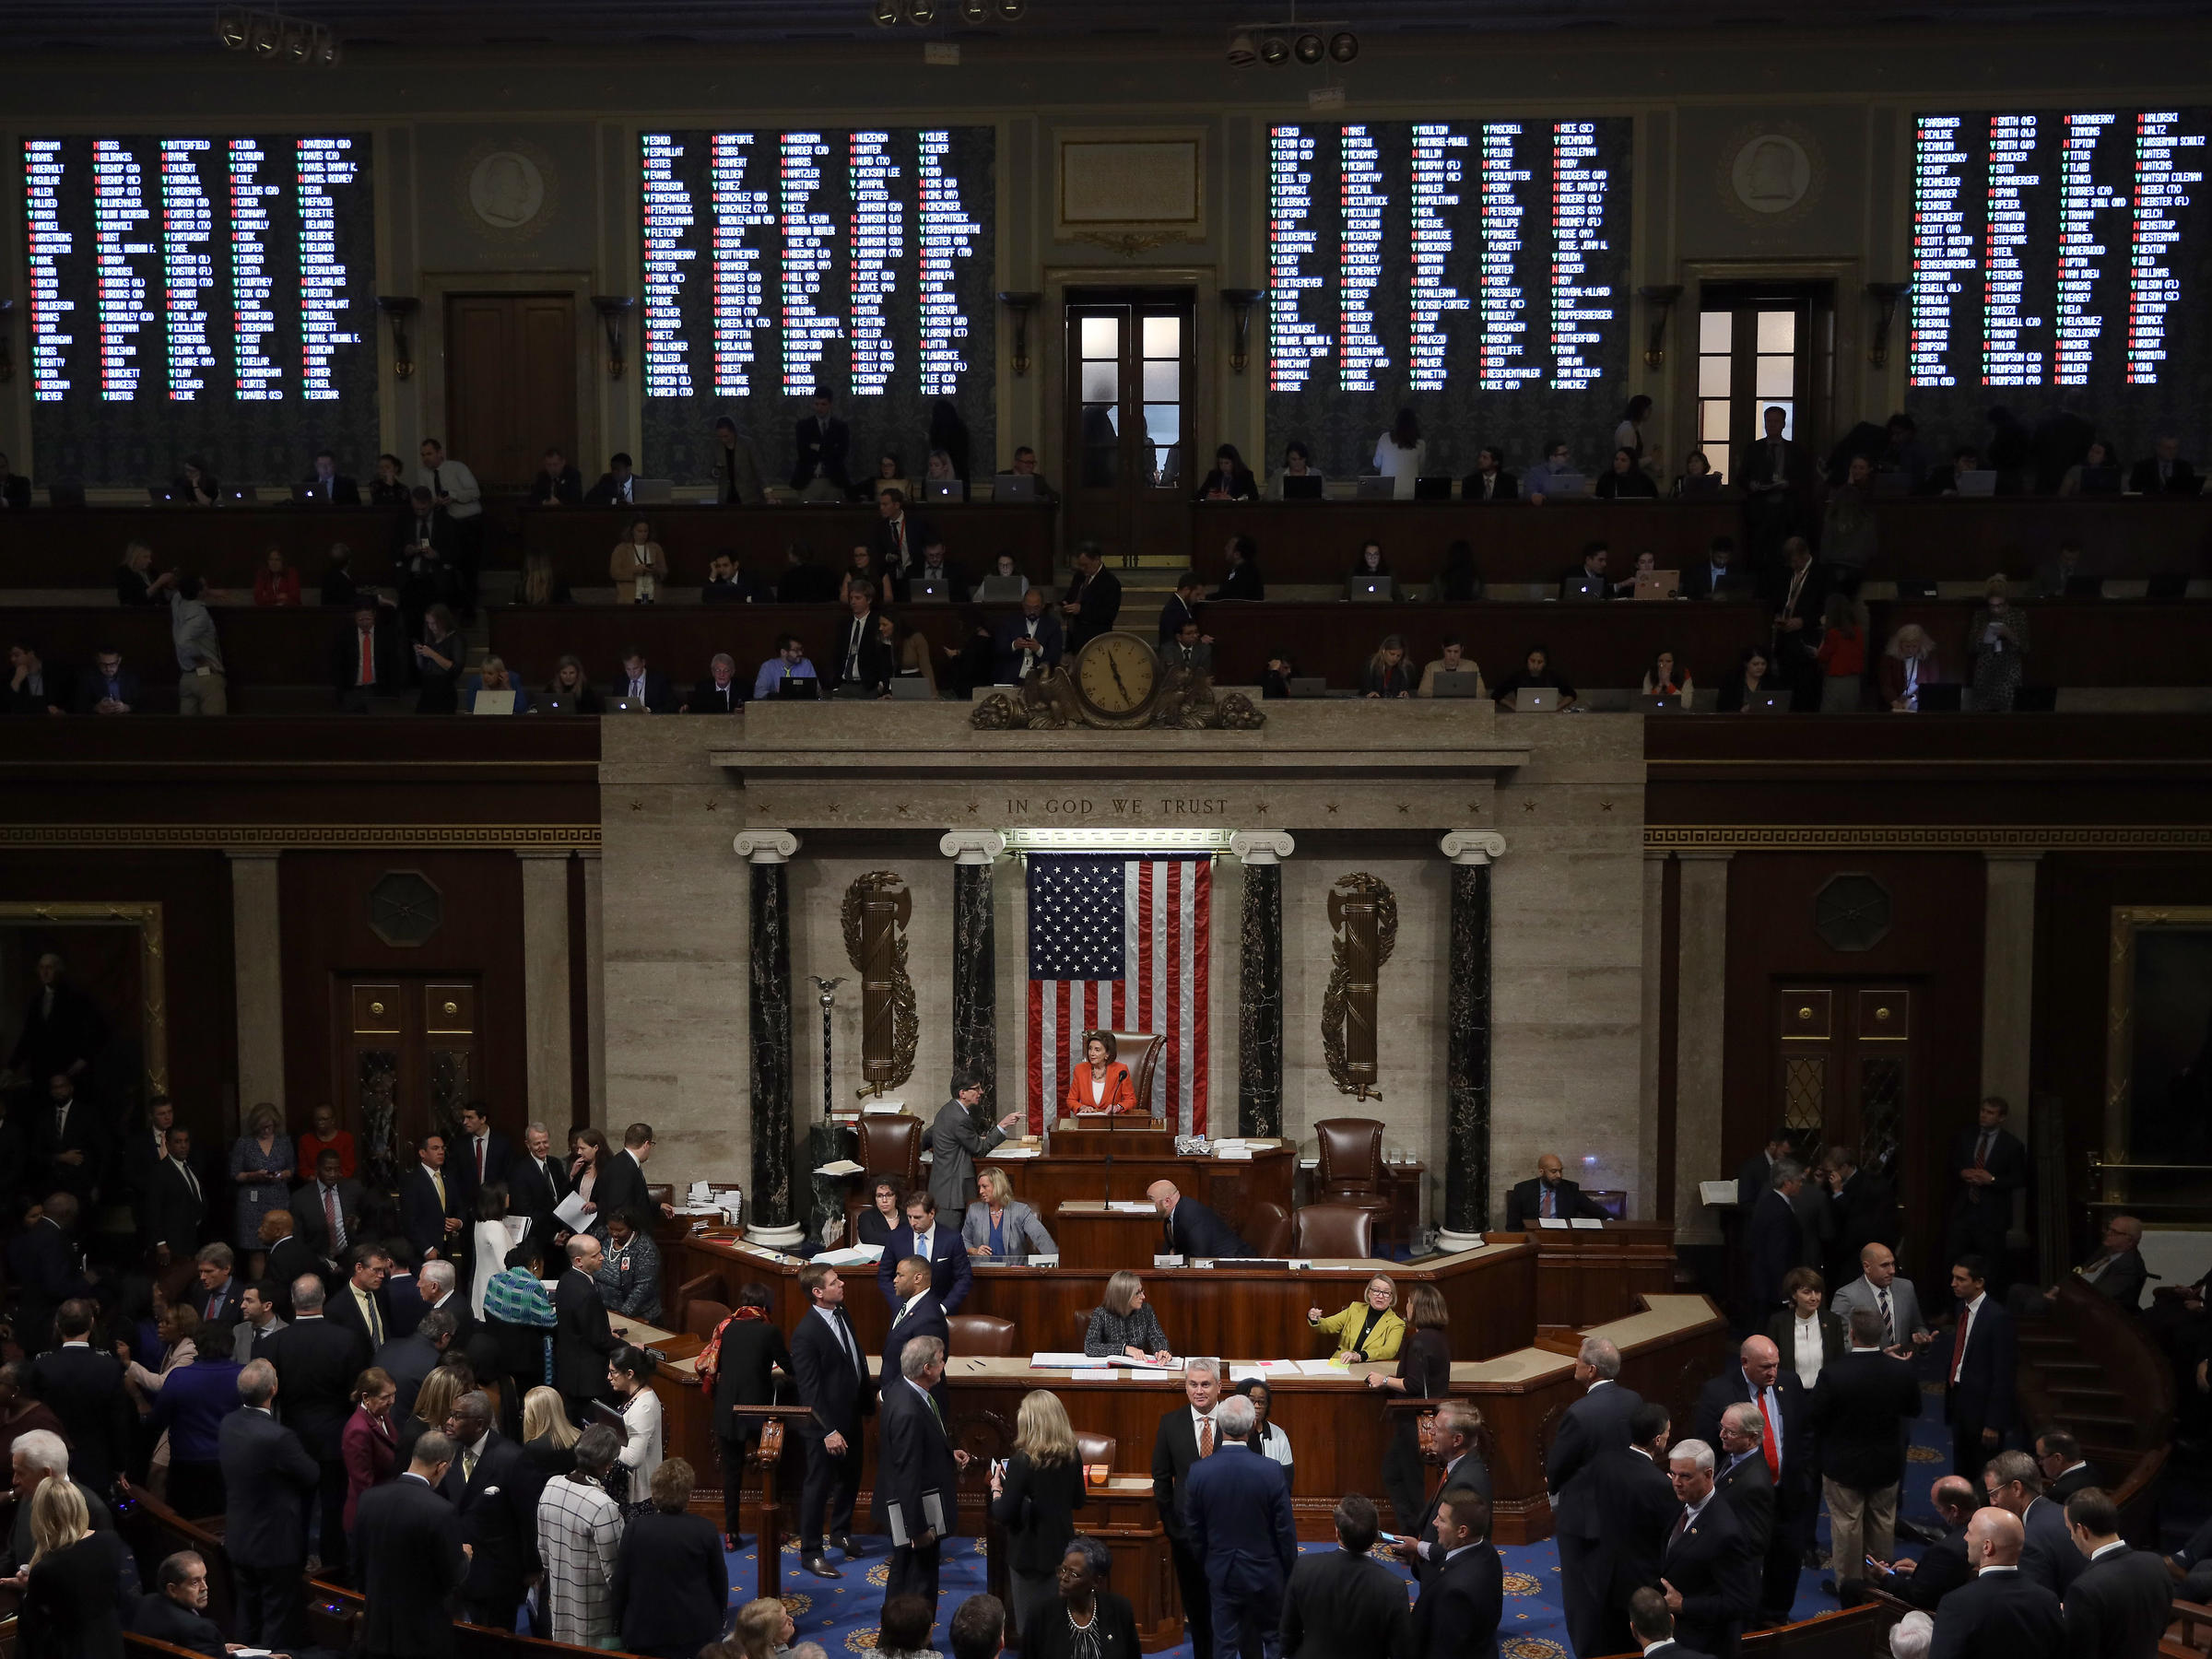 White Christmas 2020 Act 1 Ypt House To Debate And Vote On Articles Of Impeachment | WVIK